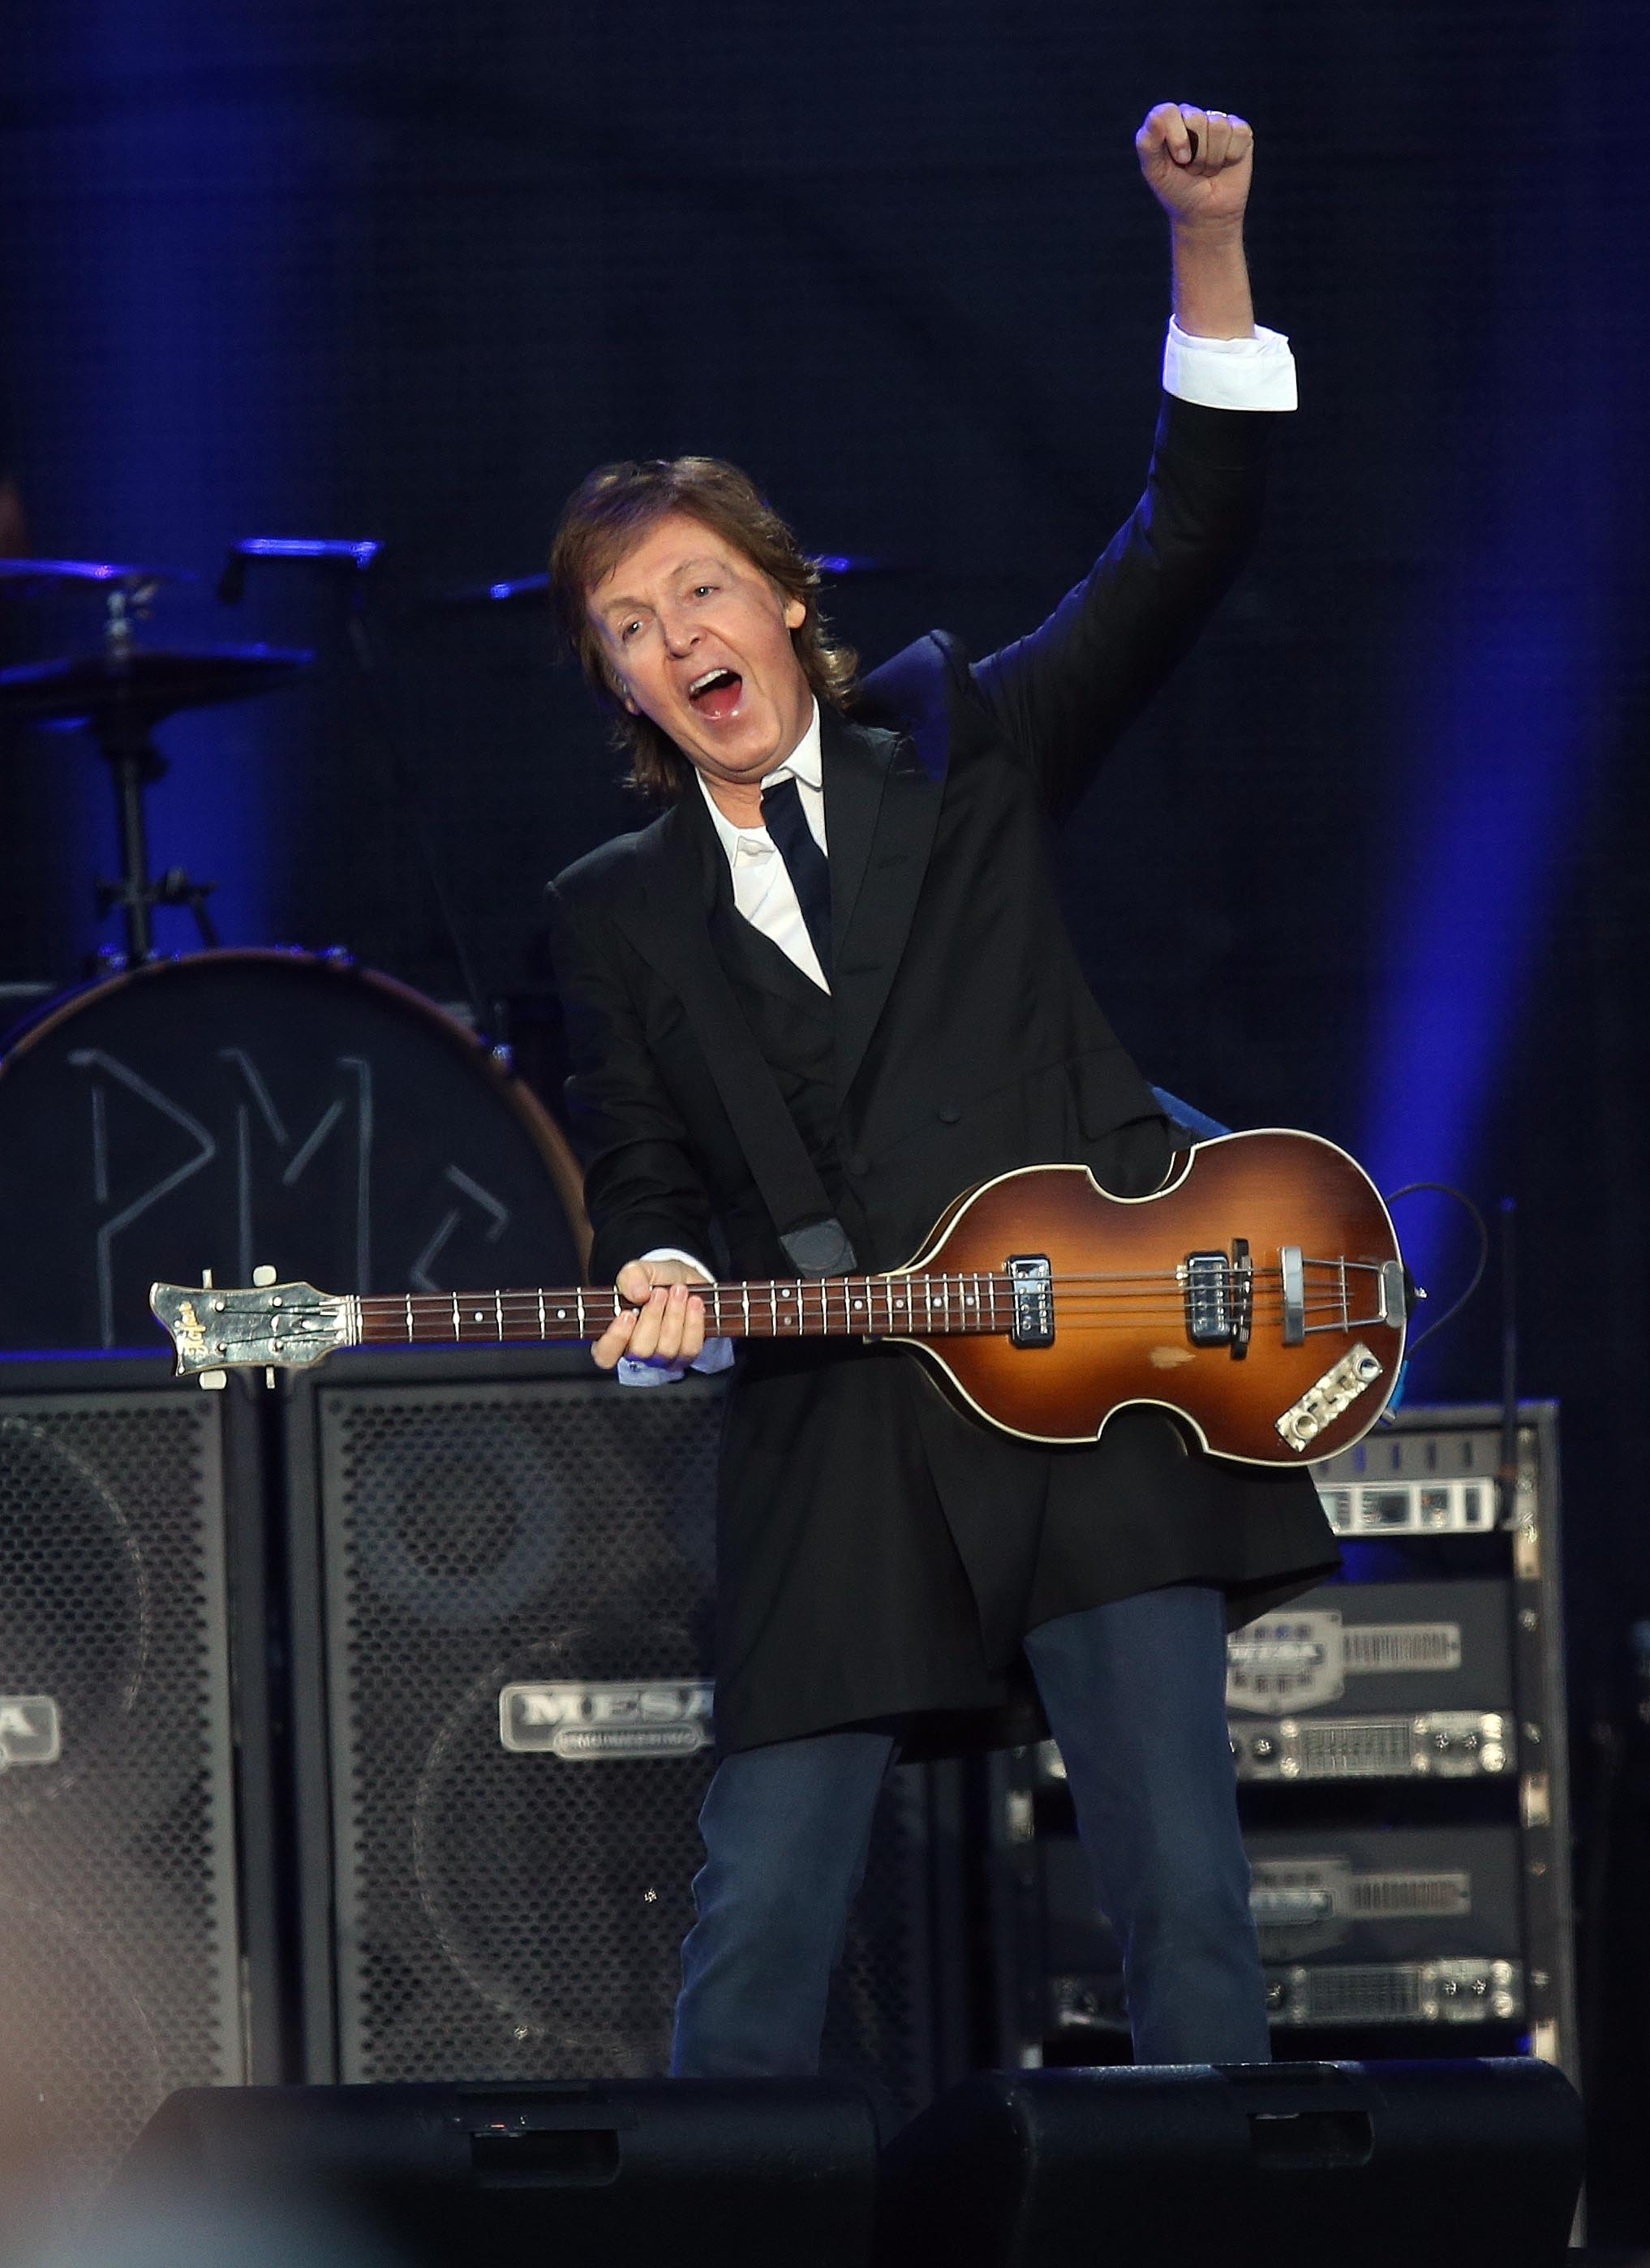 Summer sounds: Paul McCartney was in San Francisco over the weekend, headlining the sixth annual Outside Lands Music and Arts Festival in Golden Gate Park.